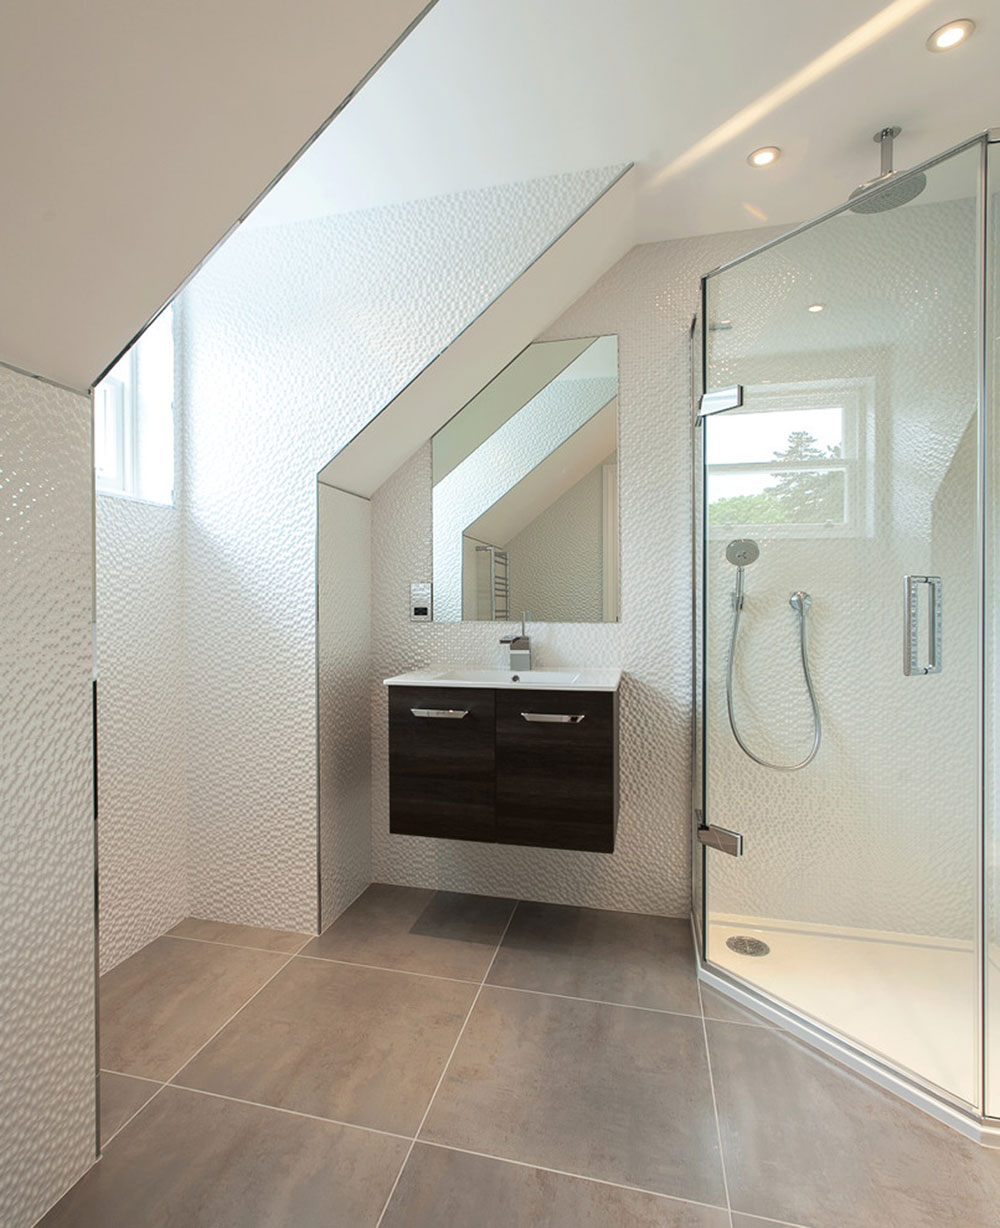 The stylish bathroom should be a priority10 The stylish bathroom should be a priority